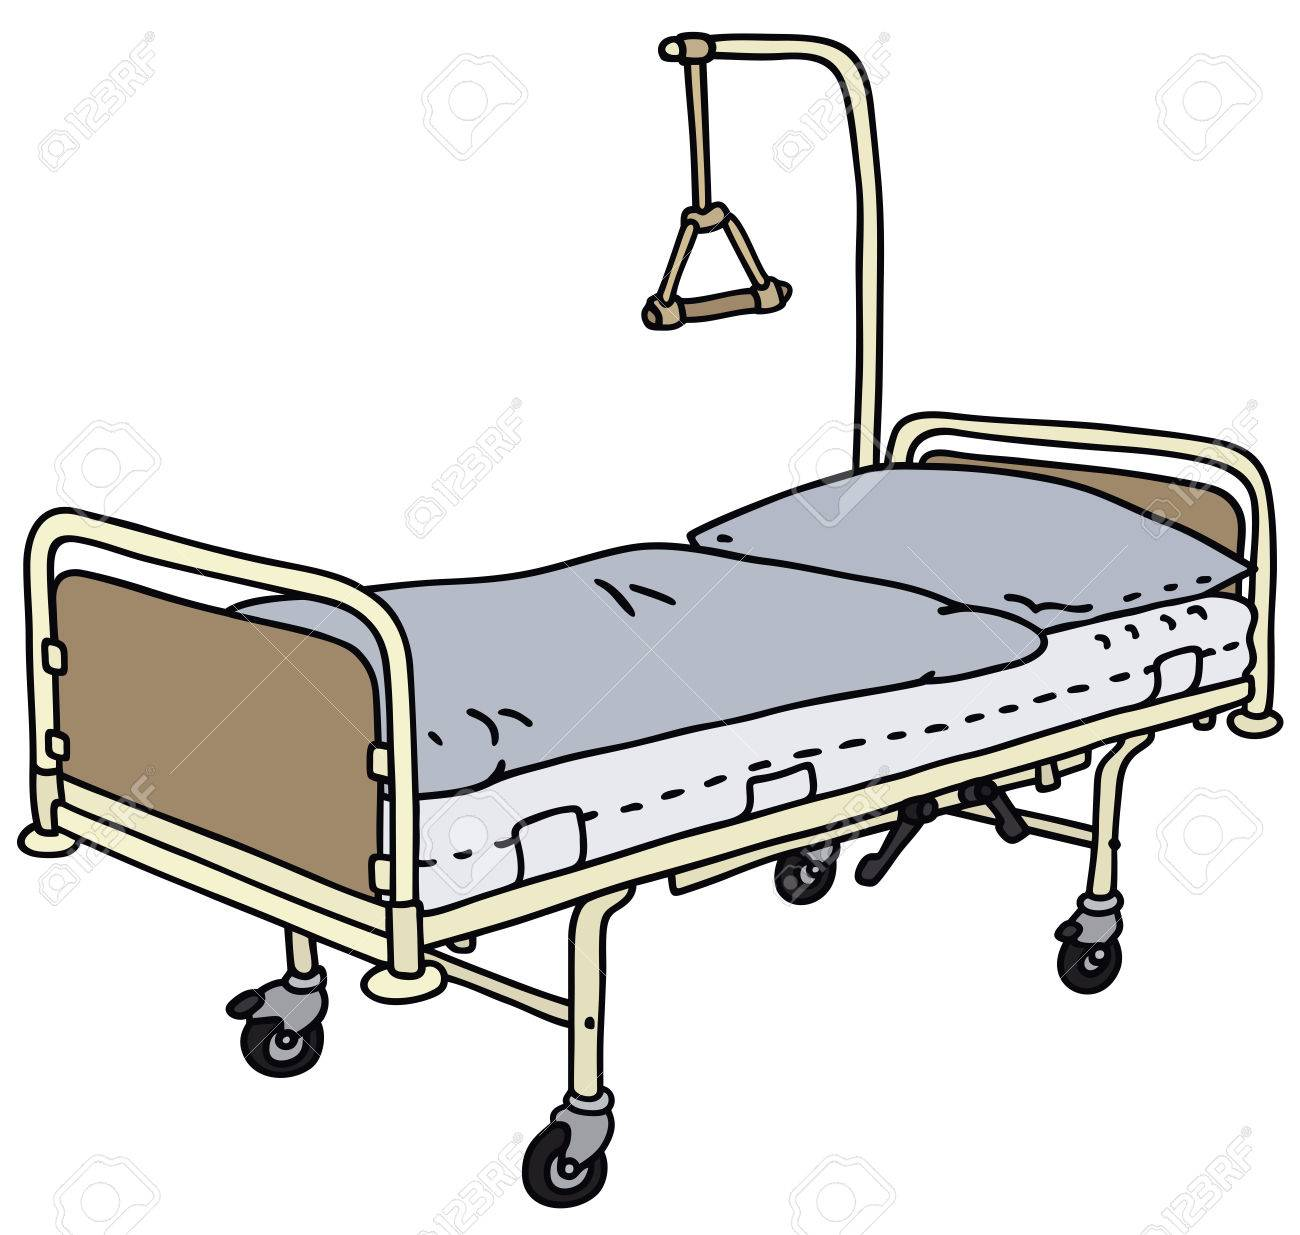 1300x1235 Hand Drawing Of A Hospital Bed Royalty Free Cliparts, Vectors,